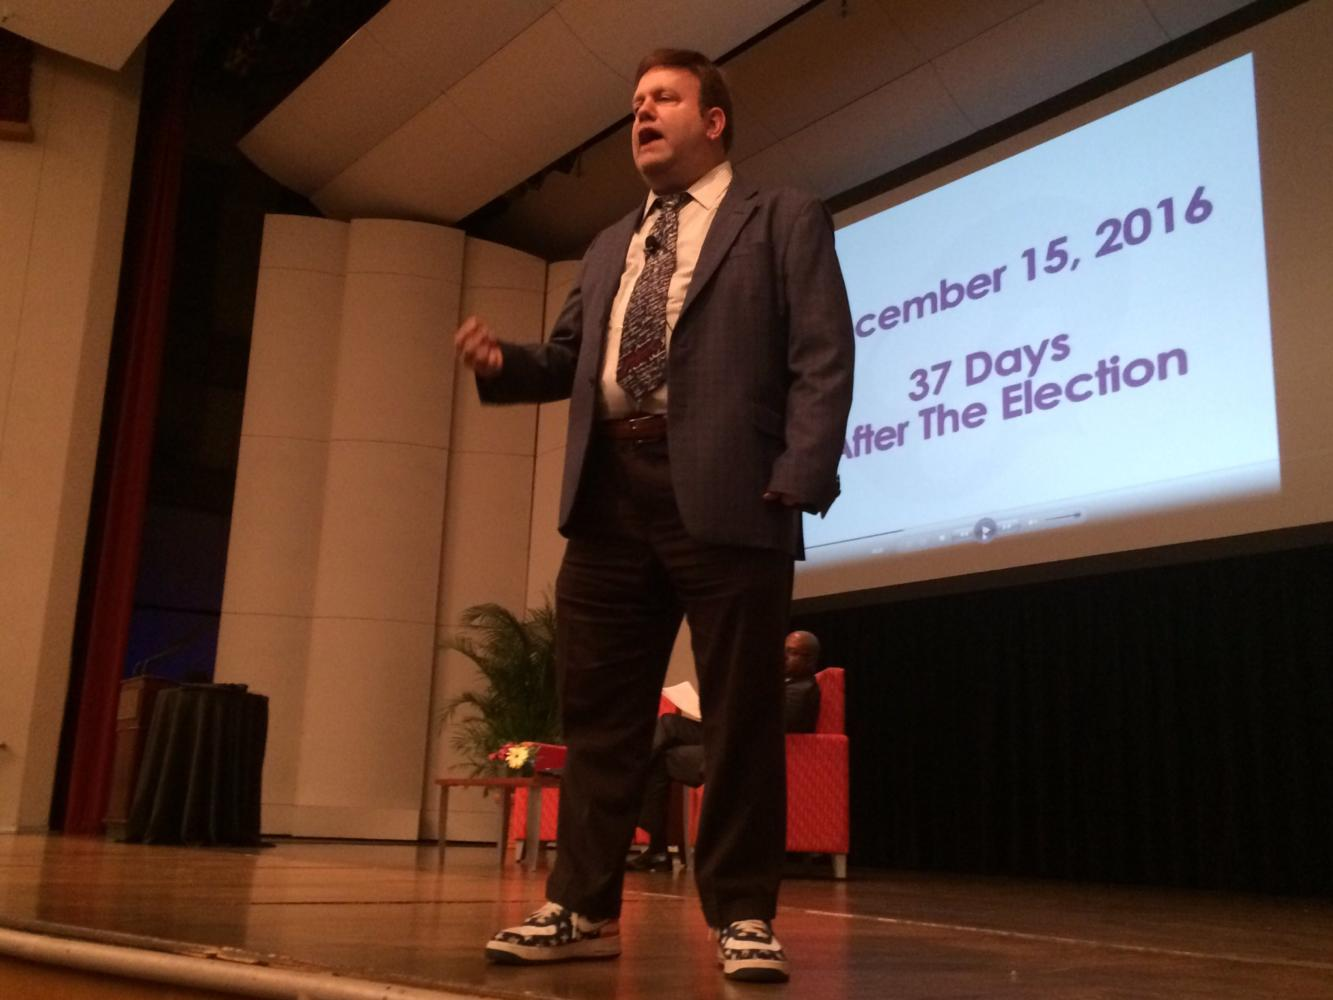 Frank Luntz speaks at the Ed Renwick Lecture Series in Roussel Hall on April 27. Luntz claimed anger as the defining mood of the American electorate. Photo credit: Nick Reimann